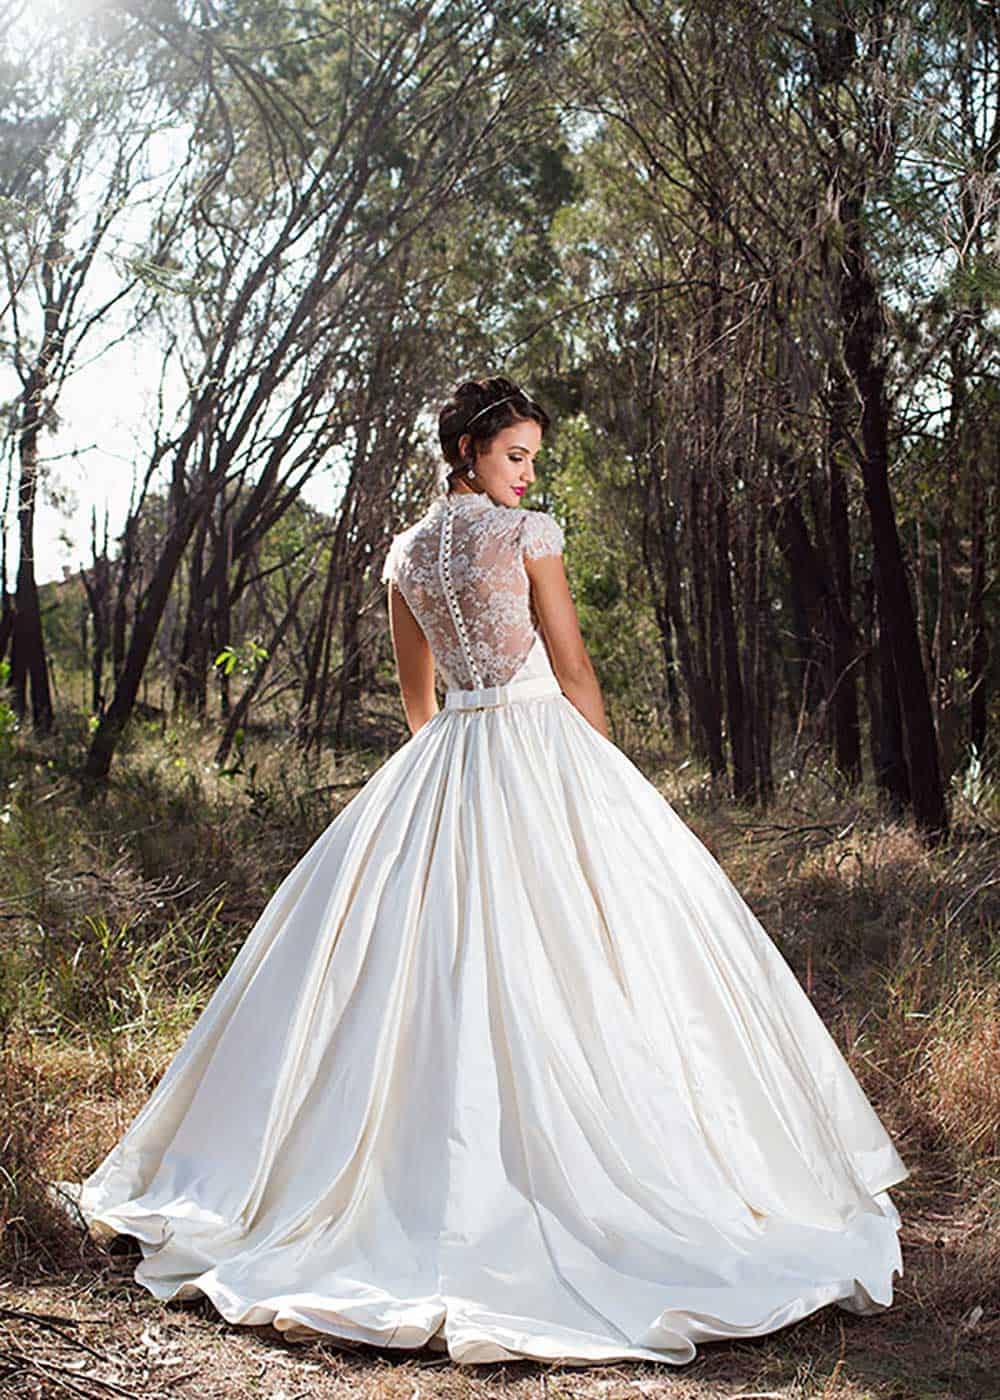 Lace backless wedding gown by Jordanna Regan.